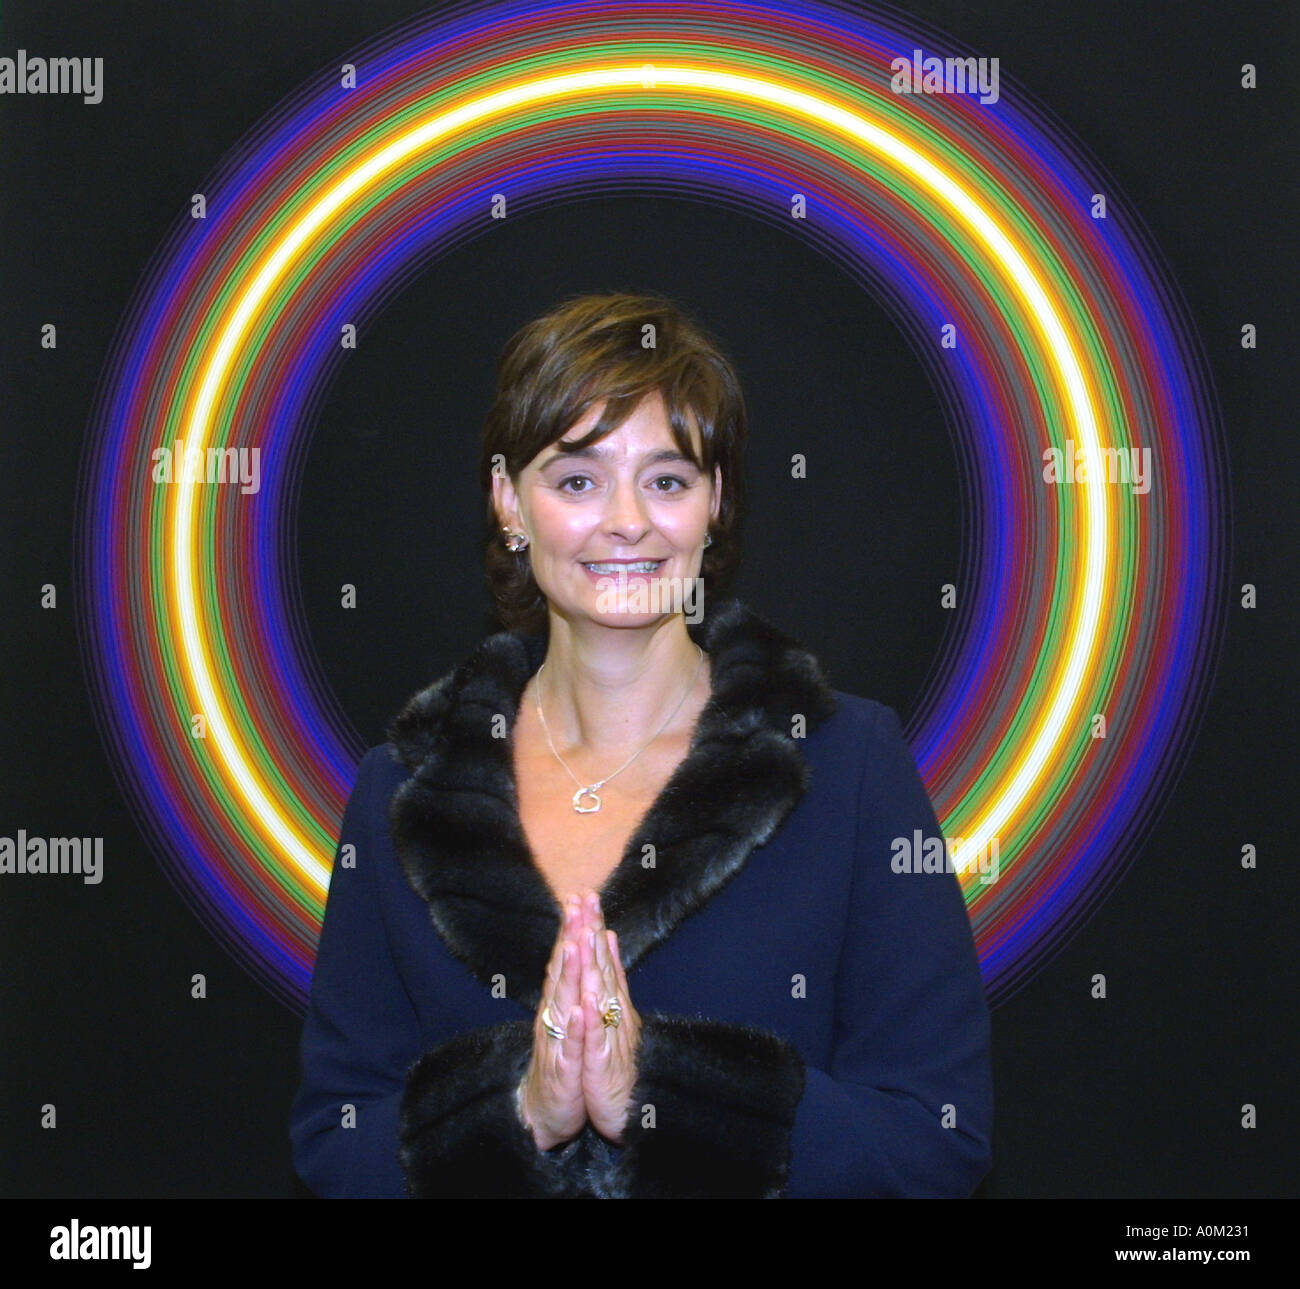 Cherie Blair, with her hands together in a mock praying gesture, standing in front of a halo like work of art Stock Photo